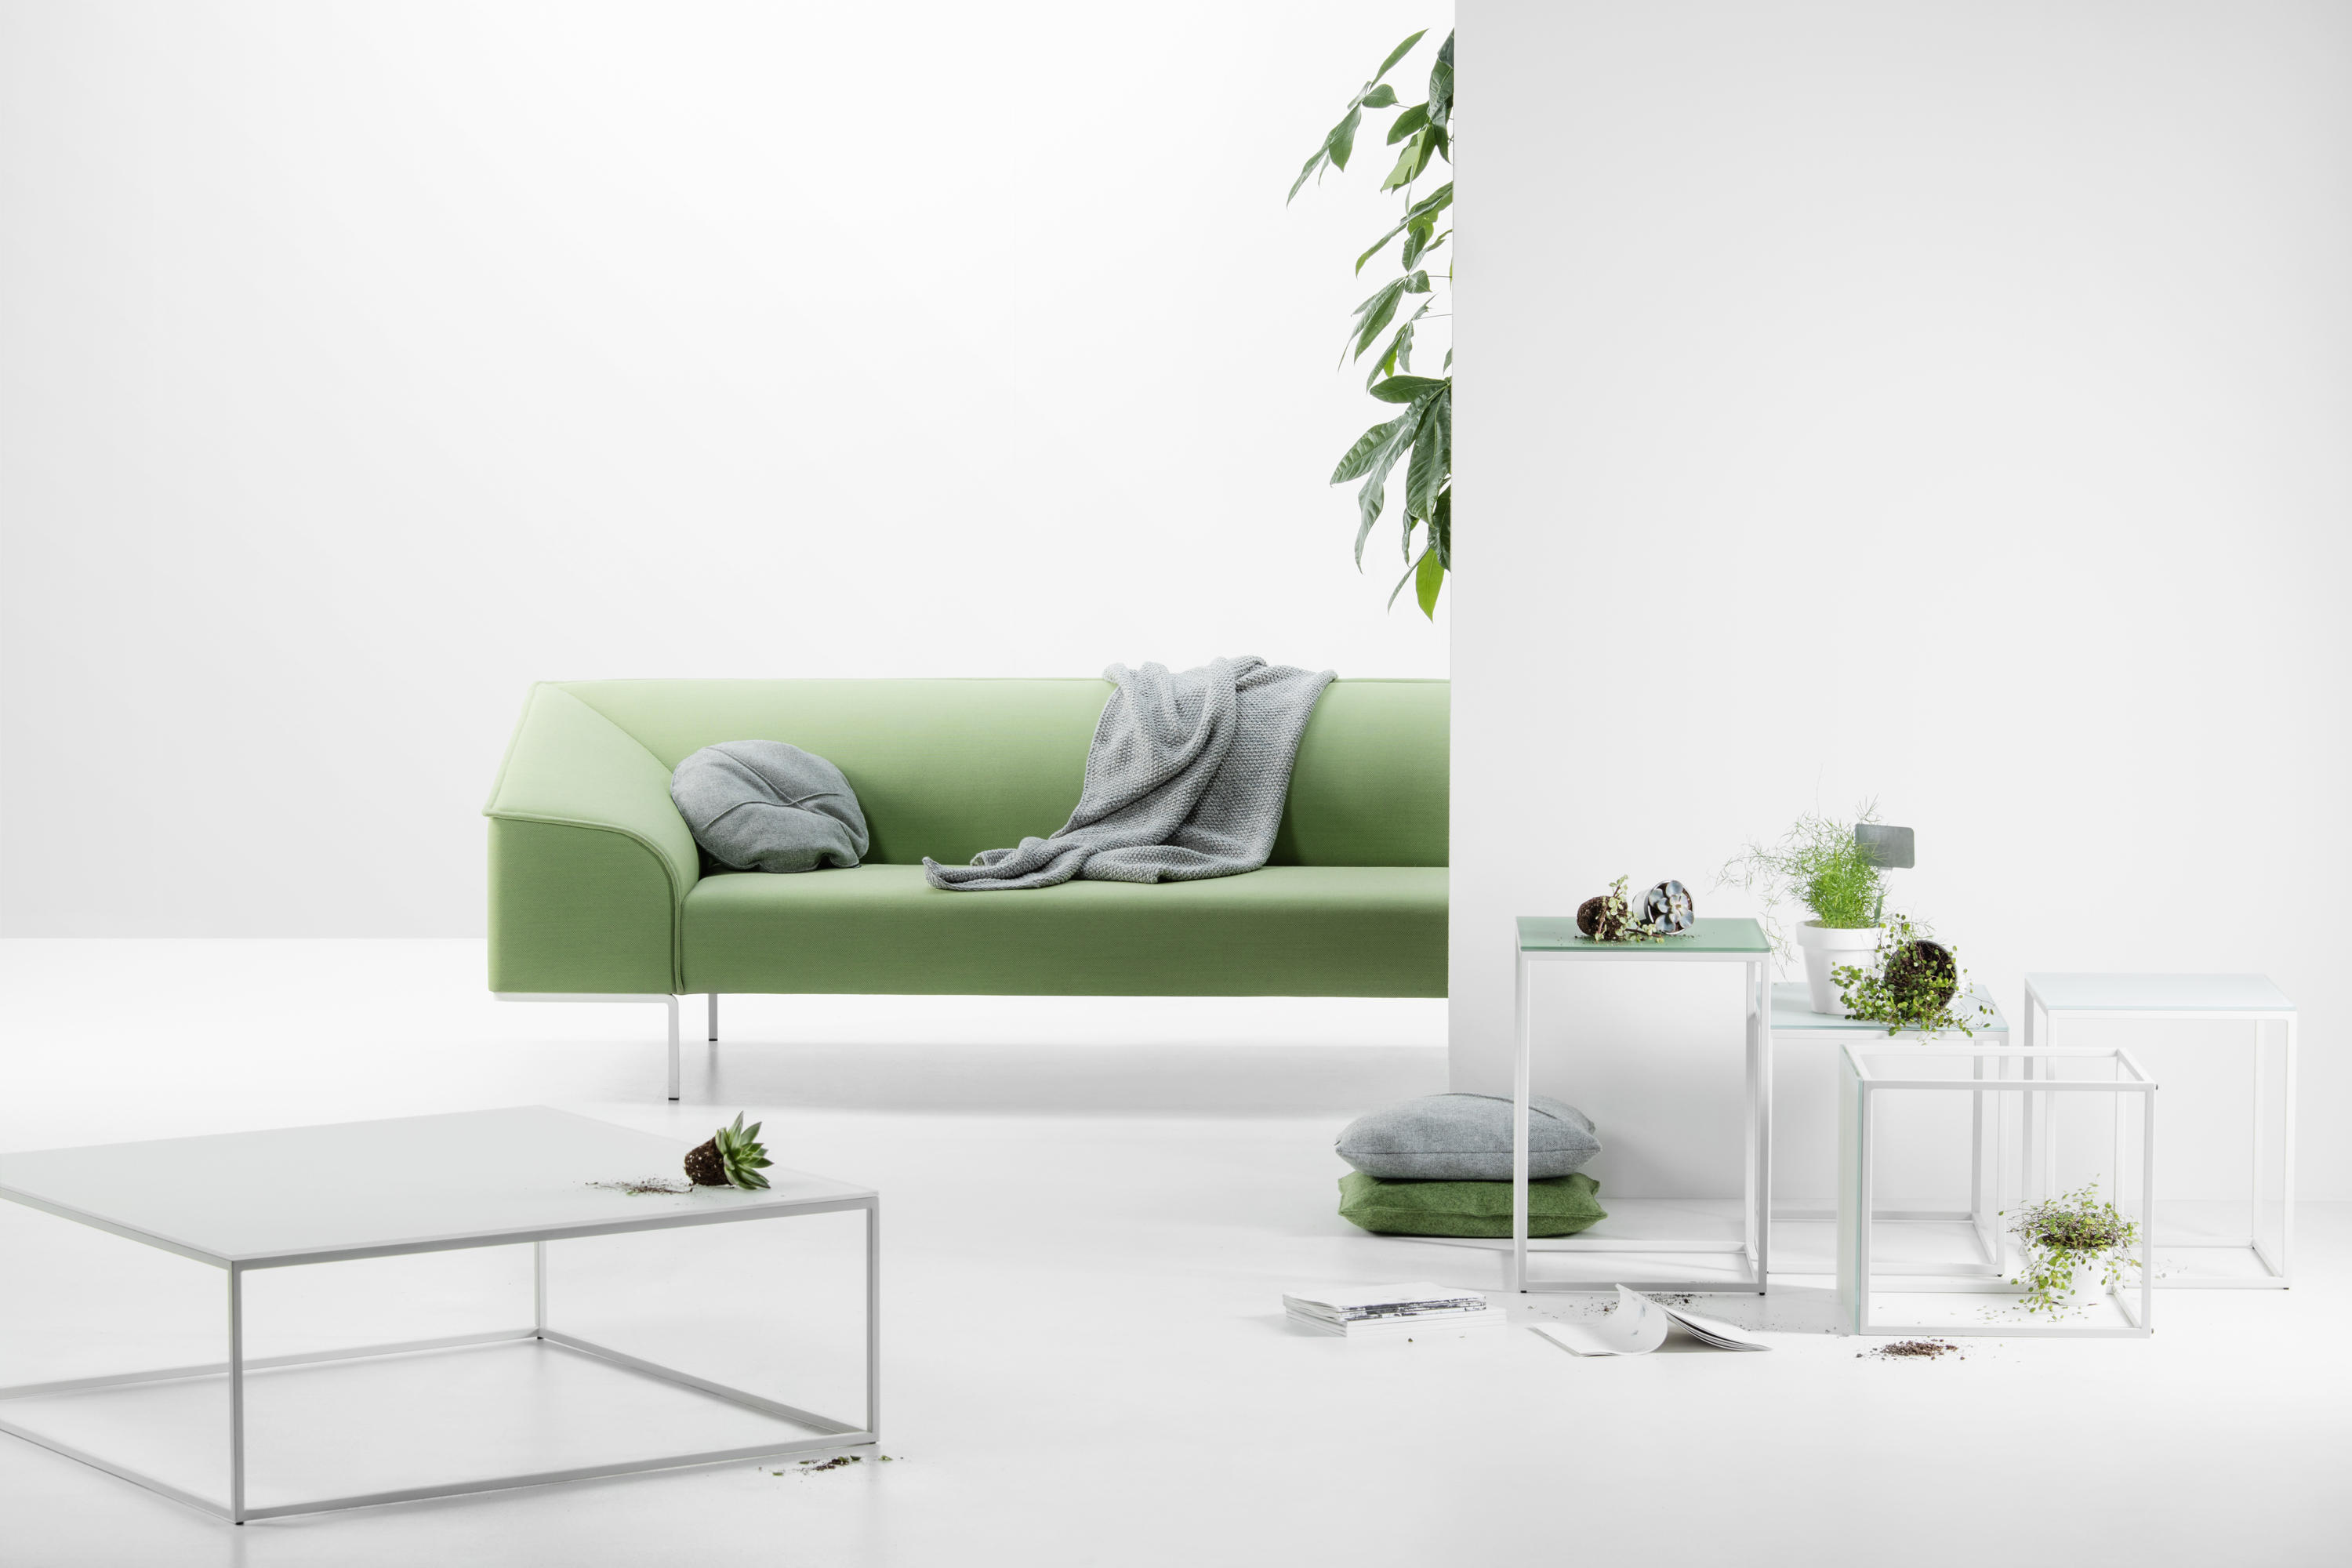 Seam Seating Collection by Prostoria